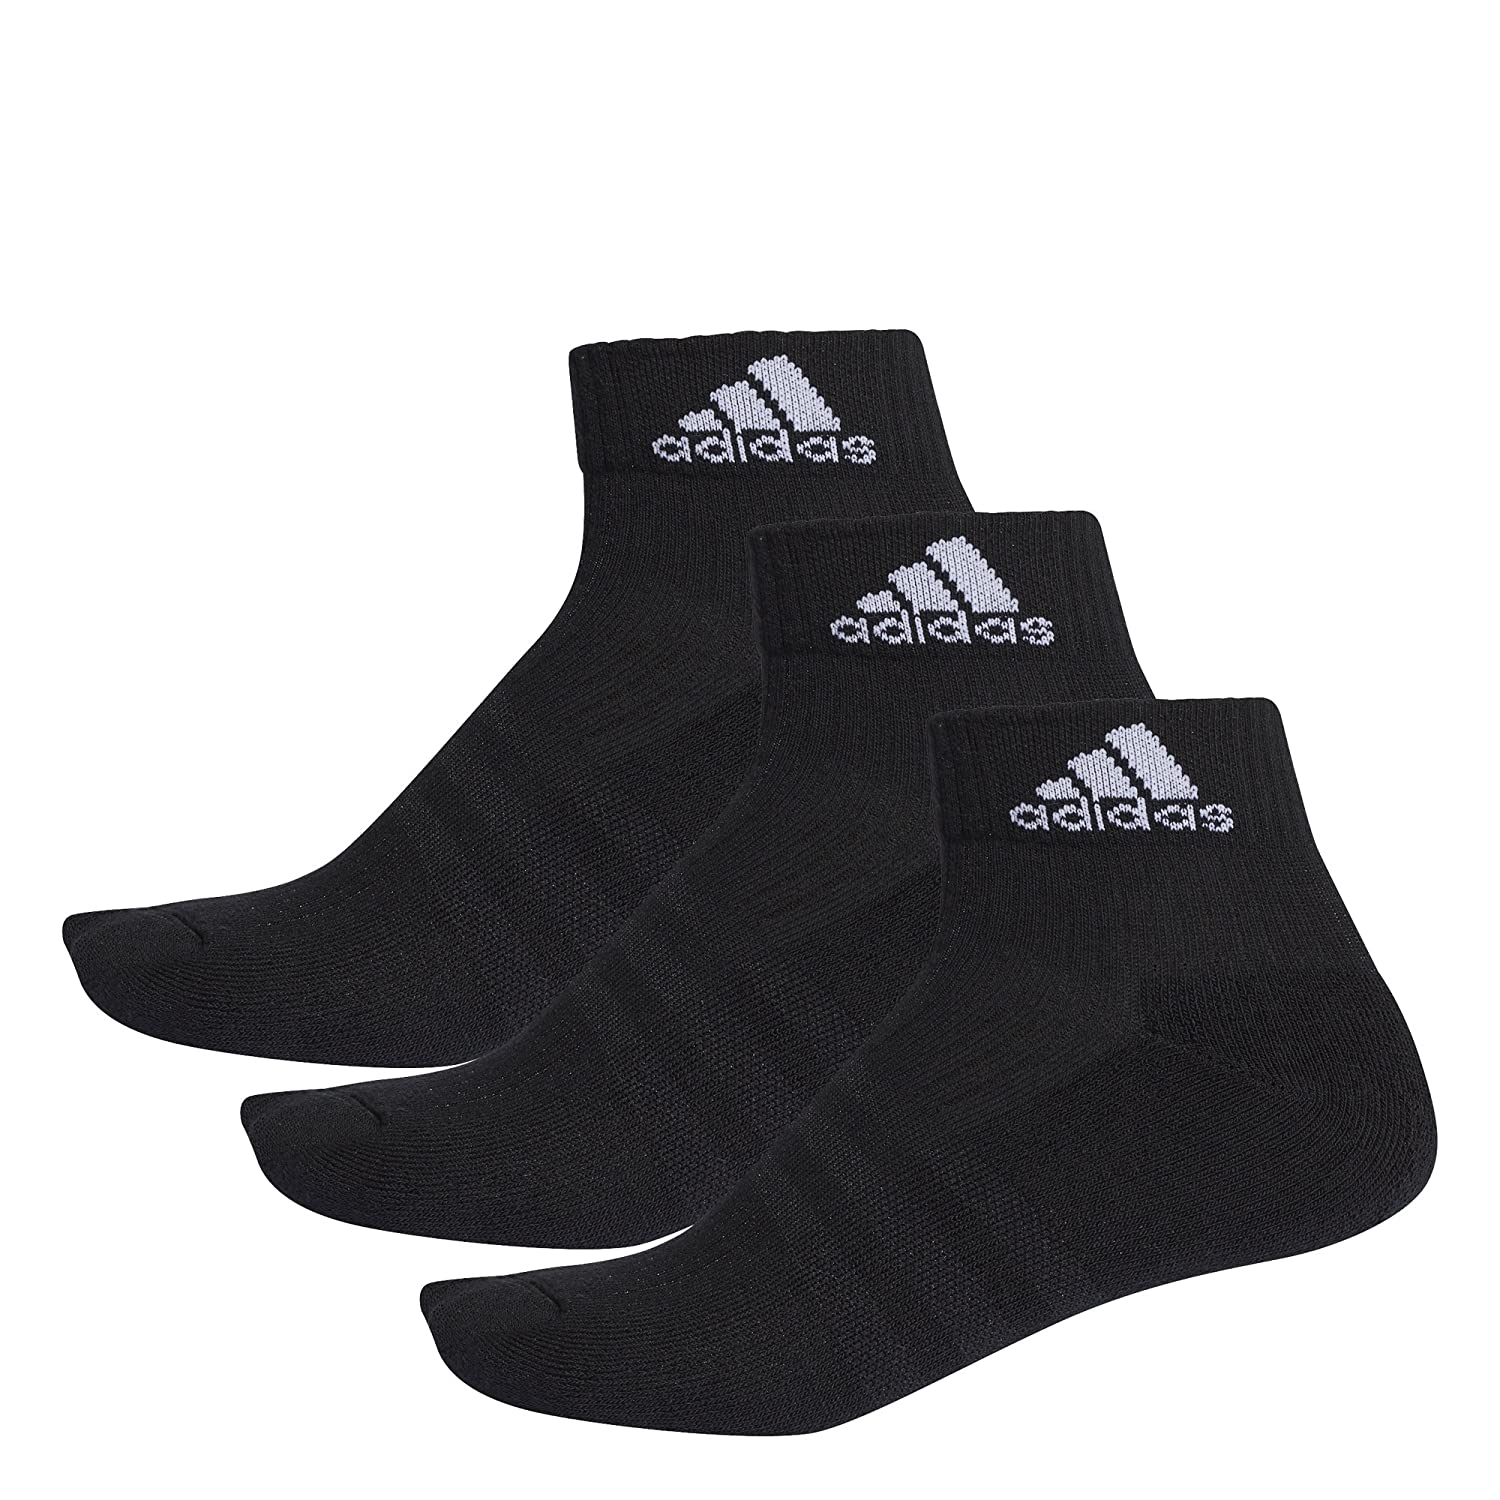 adidas Unisex 3-Stripes Performance Ankle Socks (Pack of 3 Pairs) AA2286